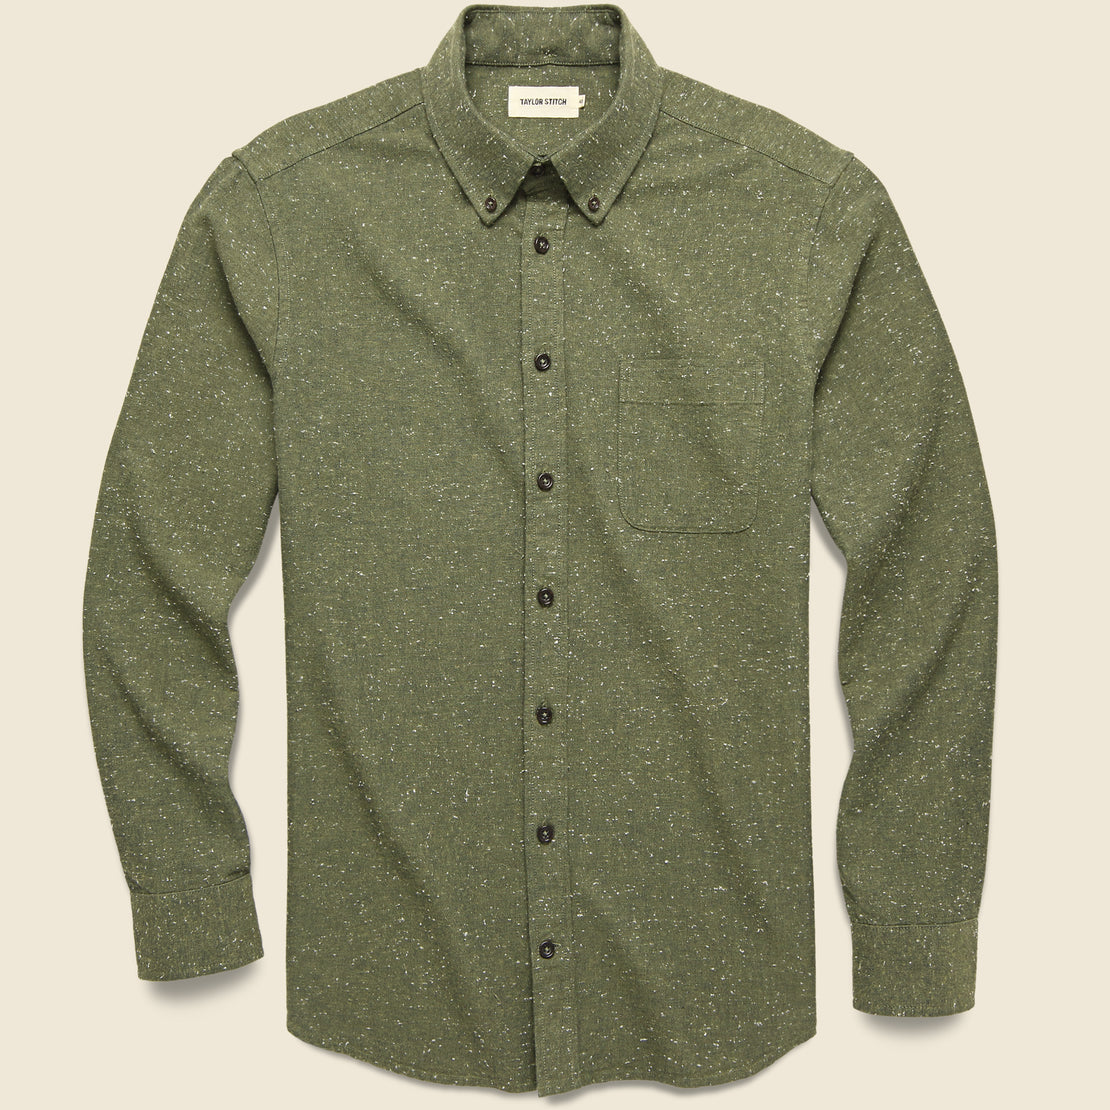 Taylor Stitch Jack Shirt - Olive Donegal